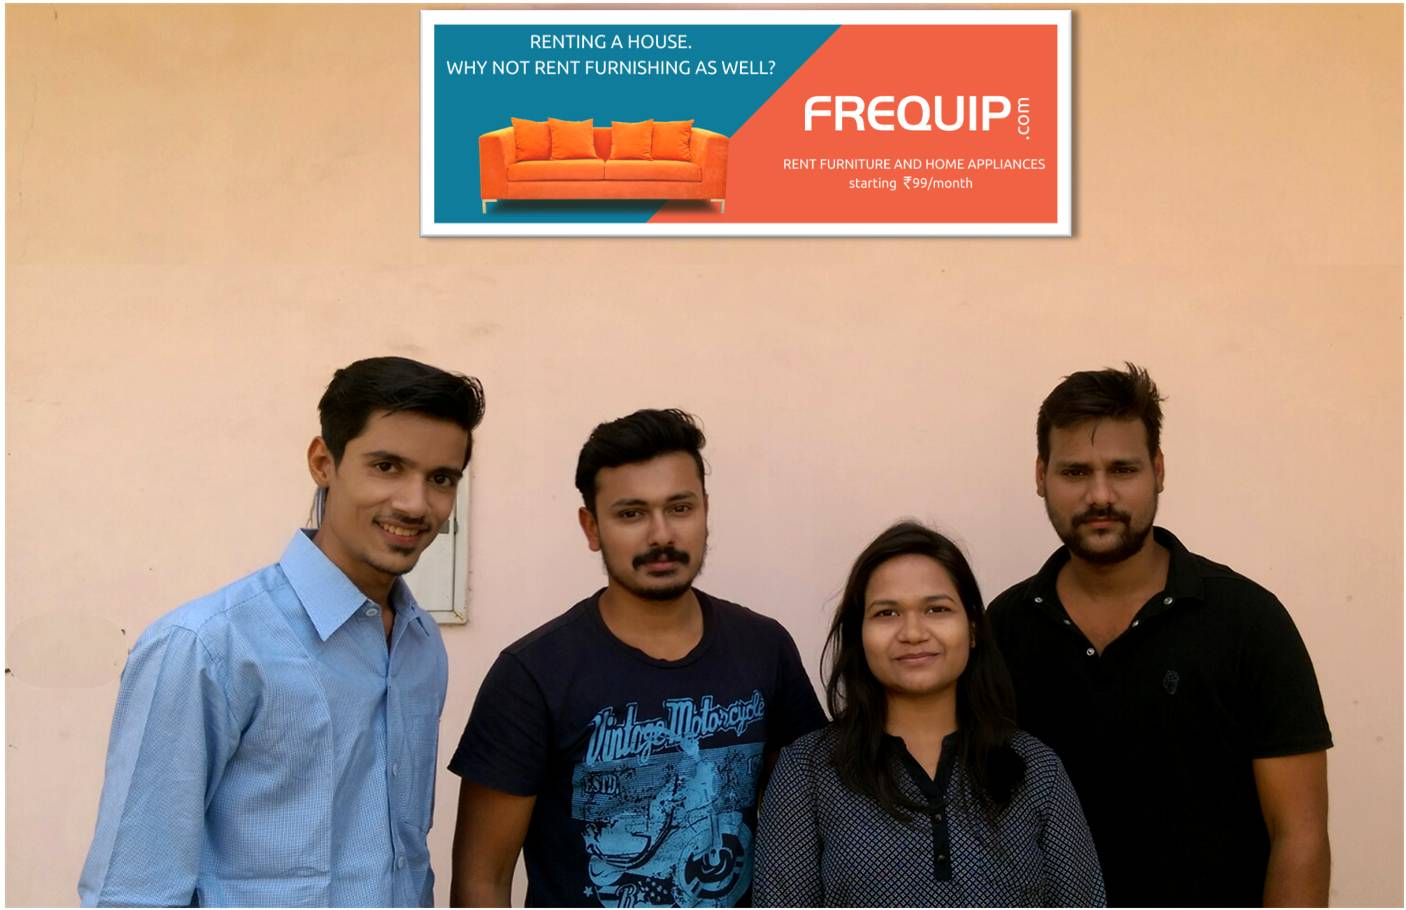 Frequip - Online Furniture and Appliances Rental Platform of India  38 – Frequip